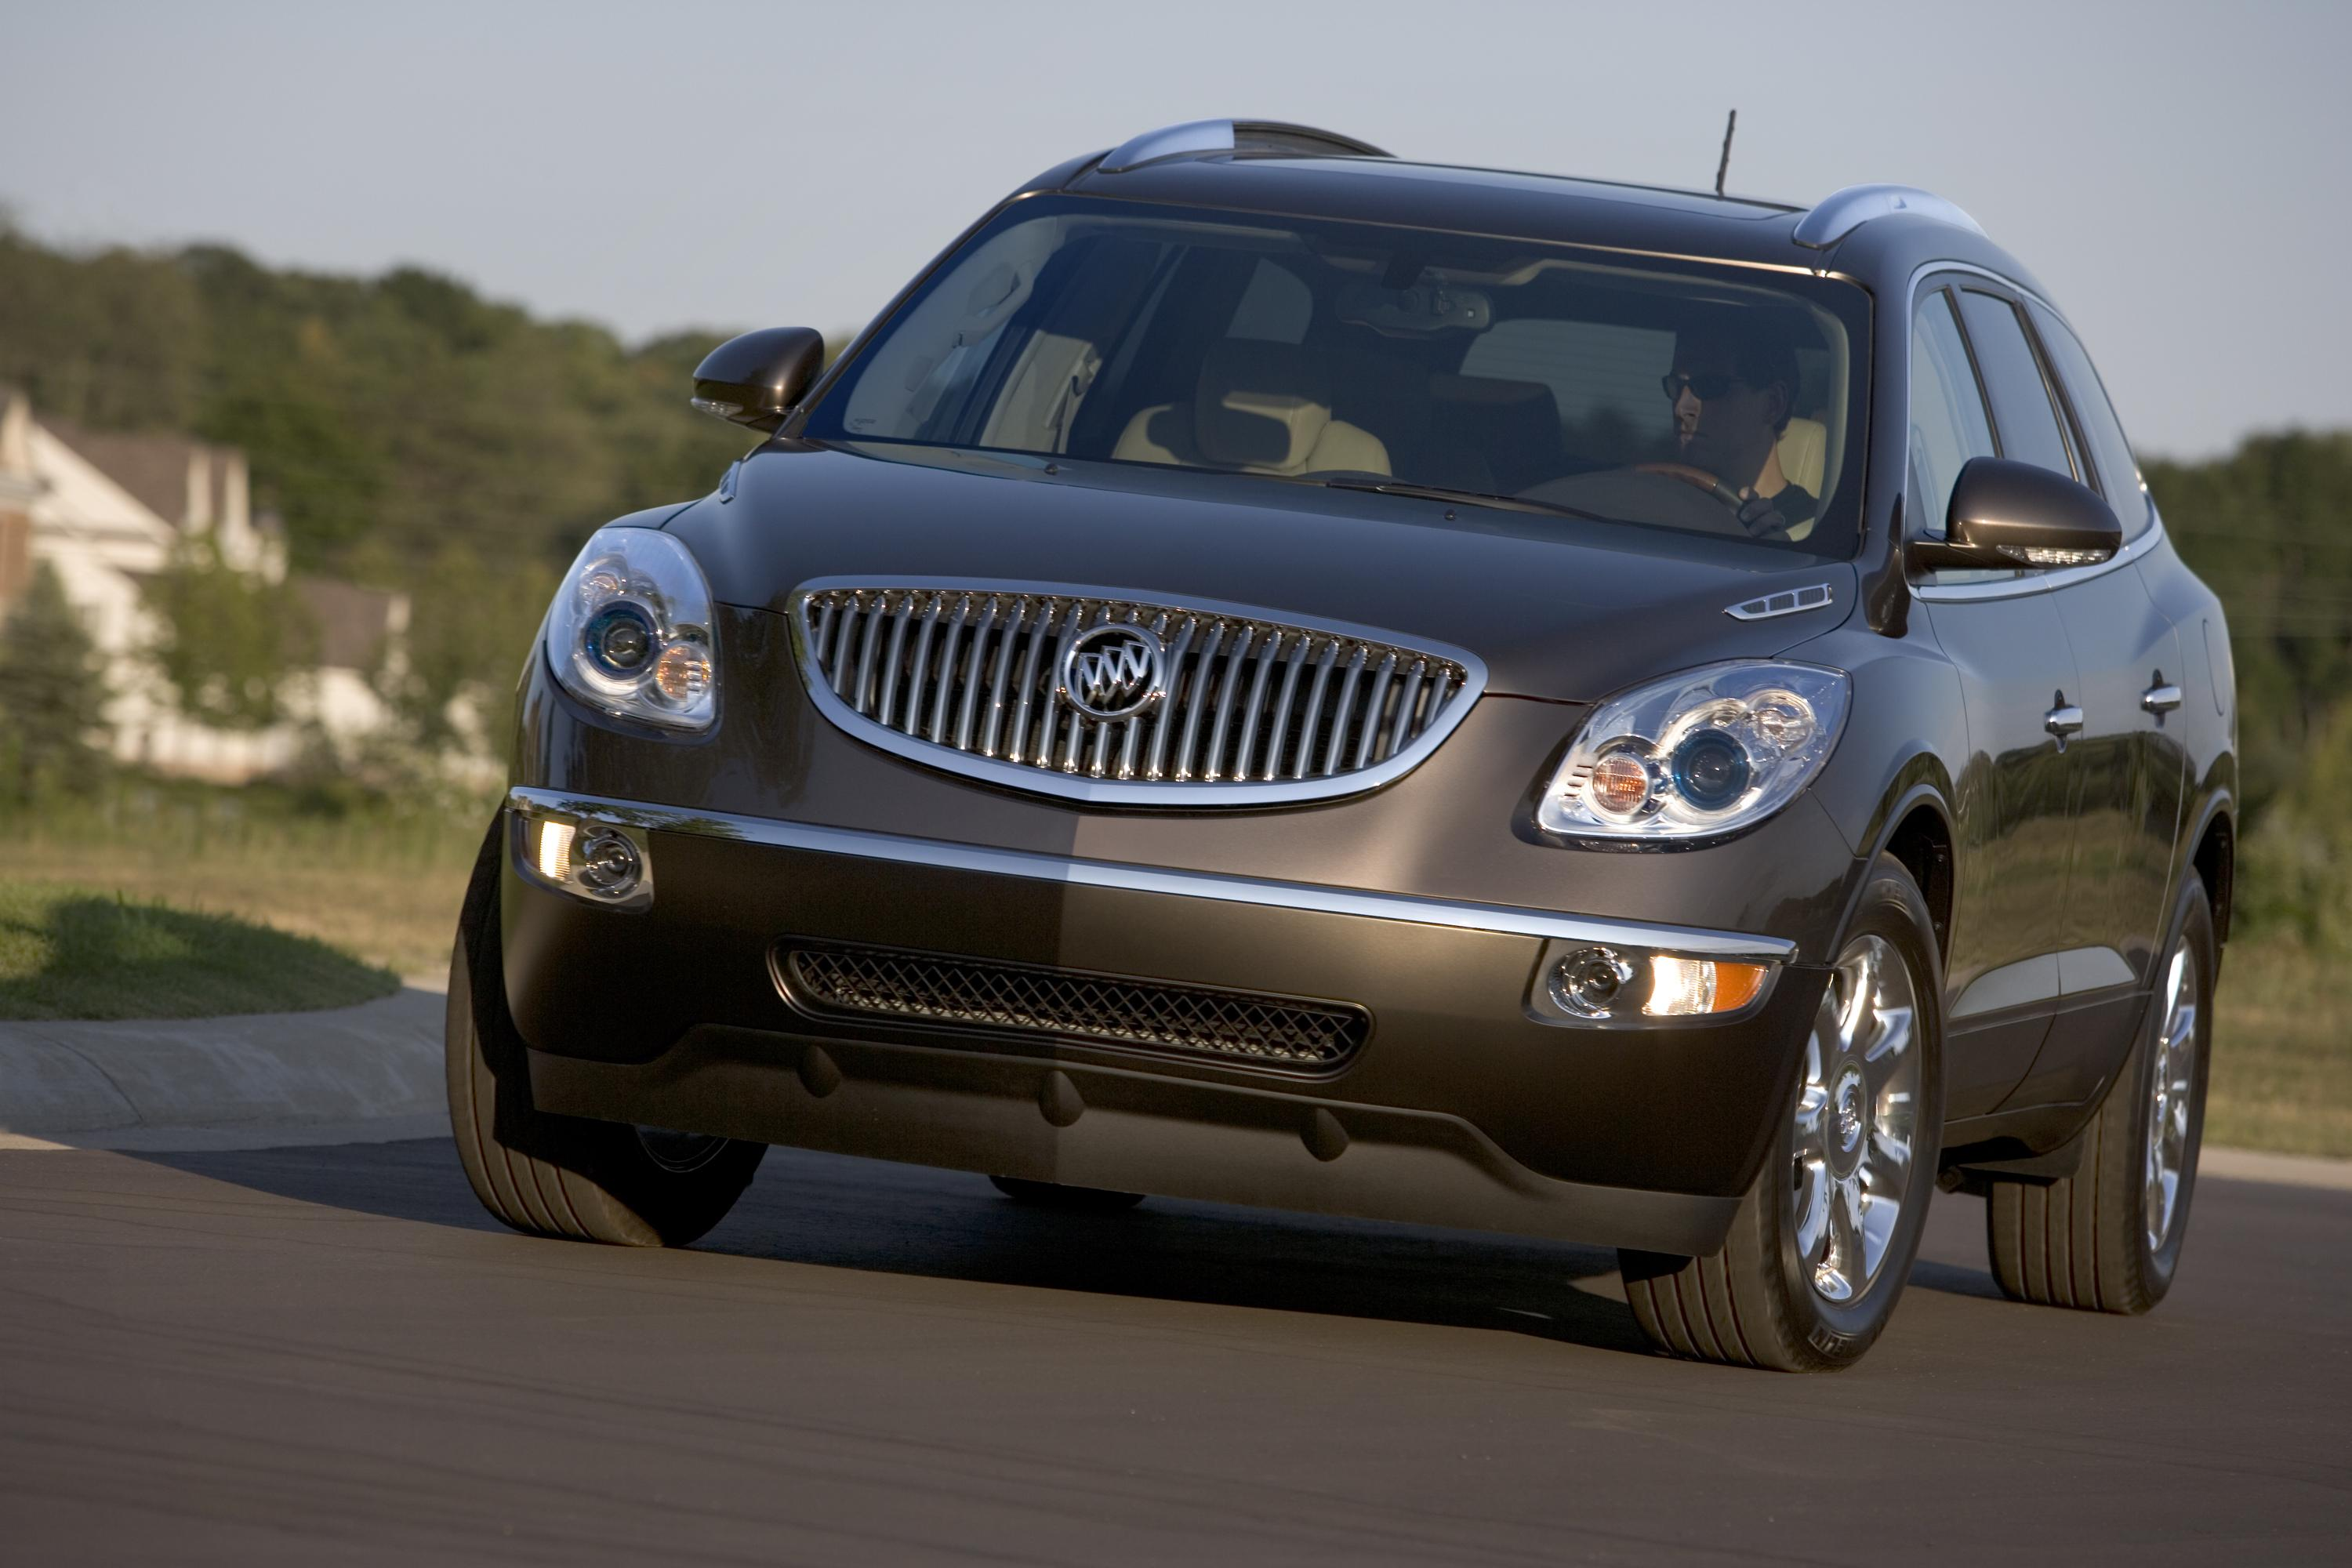 bestcarmag photos makes com nyias informations articles buick enclaves enclave